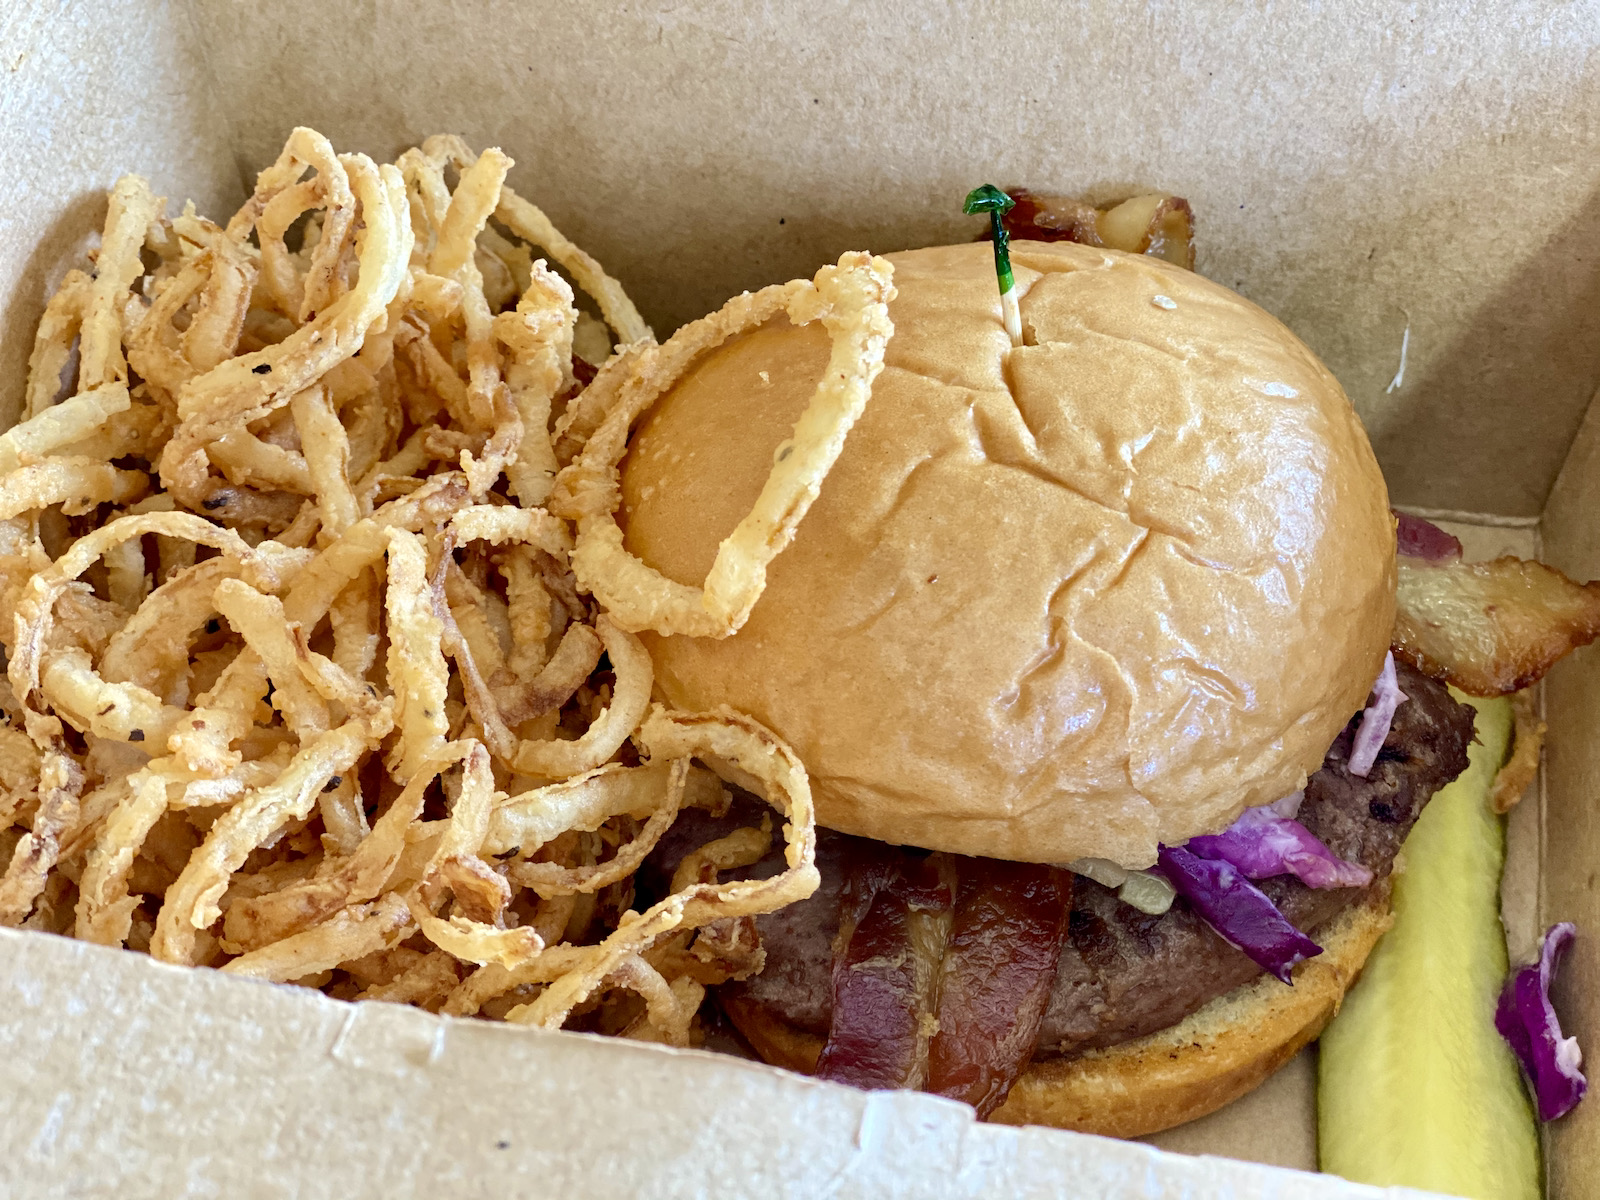 The Irish Cheddar Burger from Leff's Lucky Town